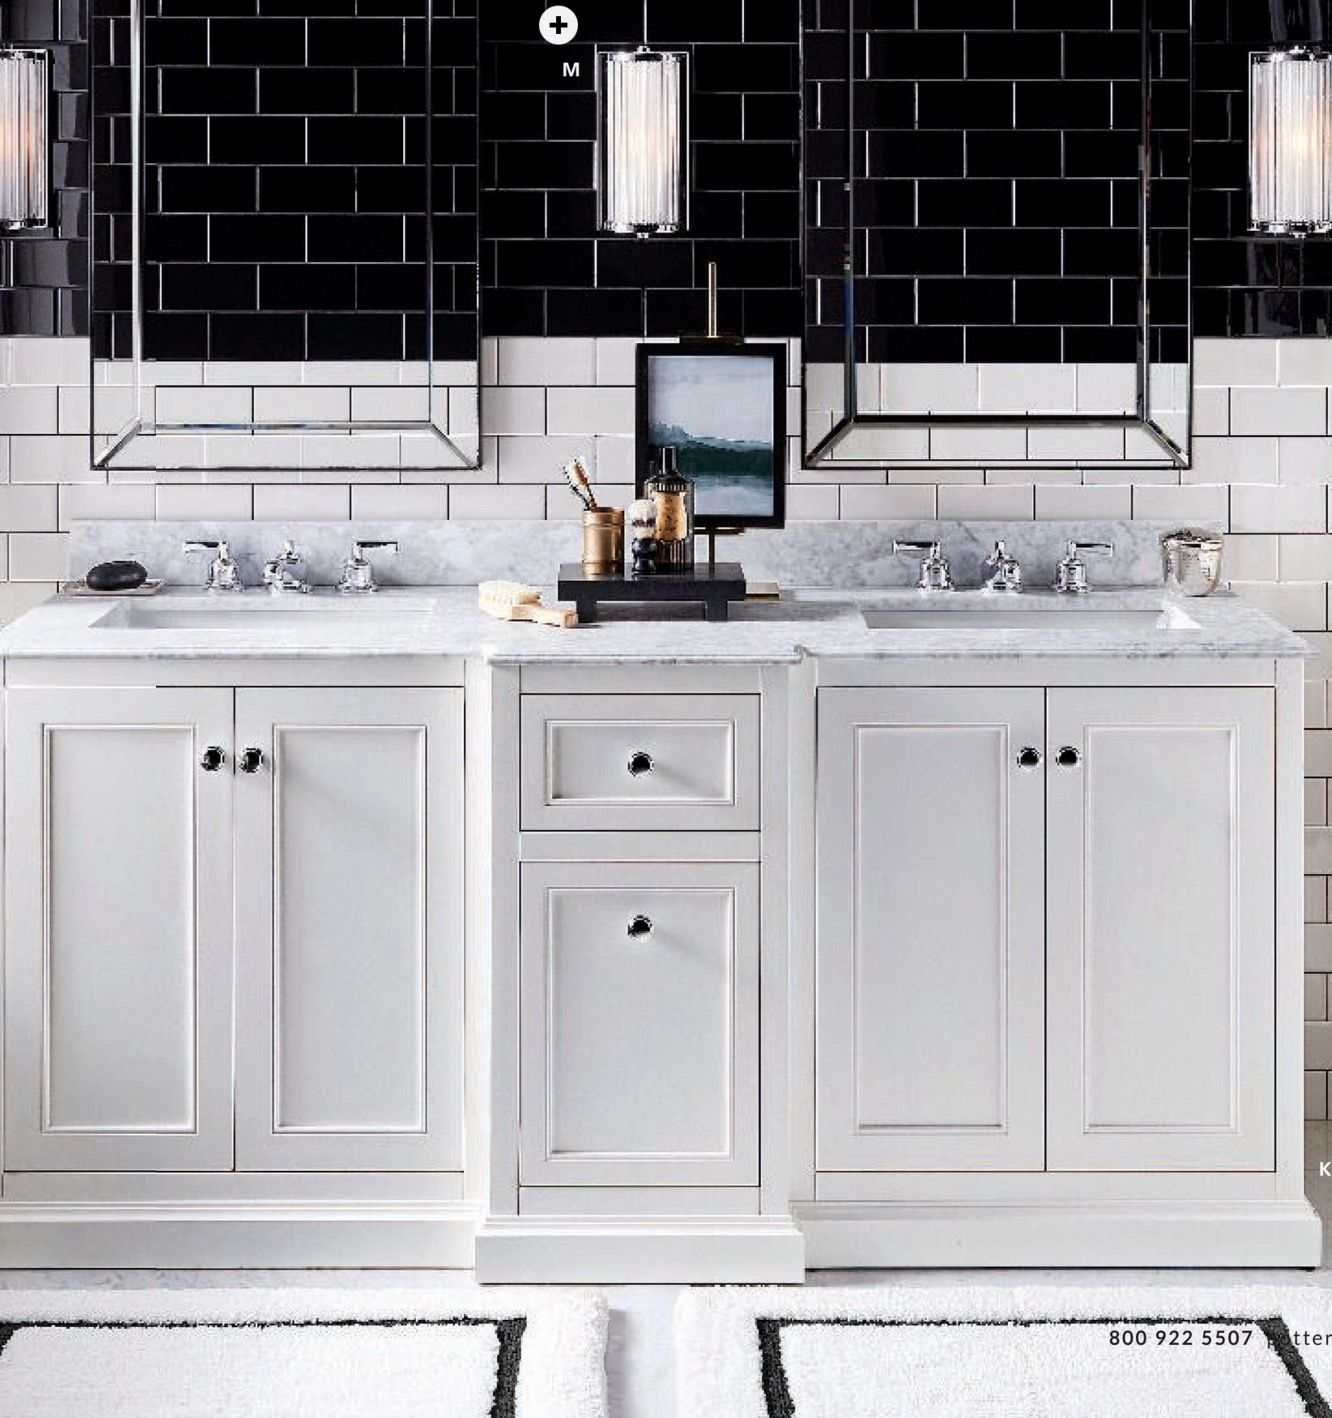 Ultimate Double Sink Bath Collection Benchwright Collection Fixtures In Polished Nickel Astor Mirrors Danlyn Bath Lighting Mor Bath Rugs Double Sink Vanity [ 1418 x 1332 Pixel ]